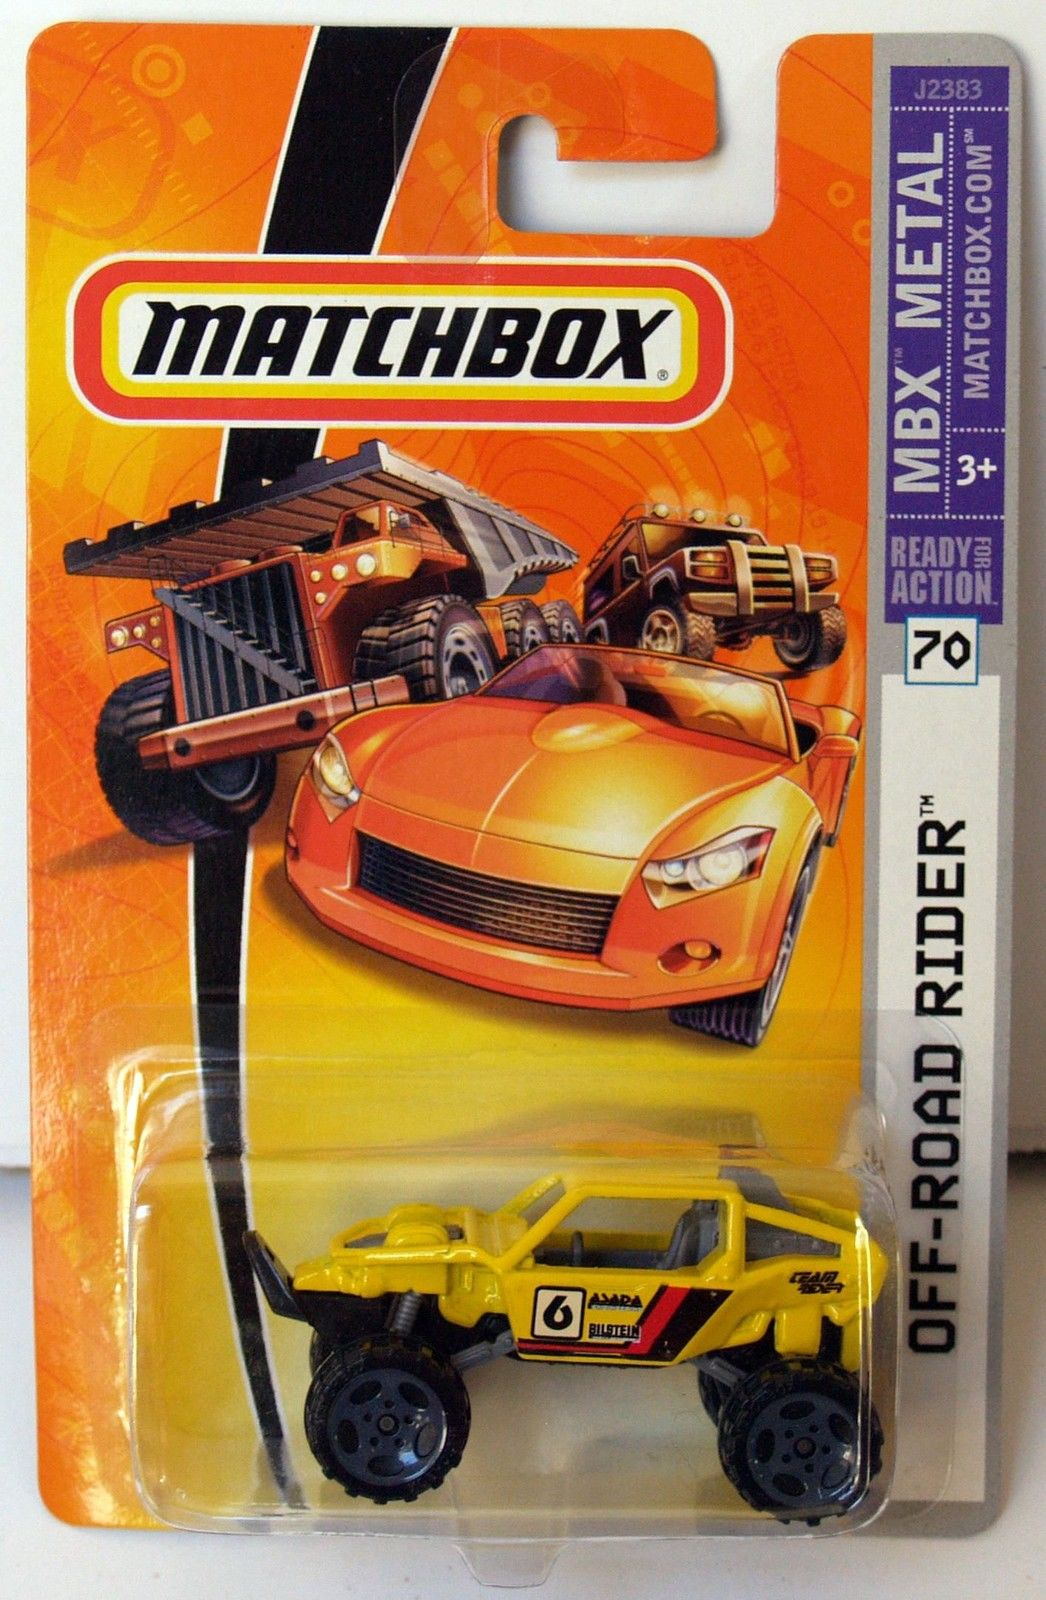 MATCHBOX 2006 OFF-ROAD RIDER #70 YELLOW E+